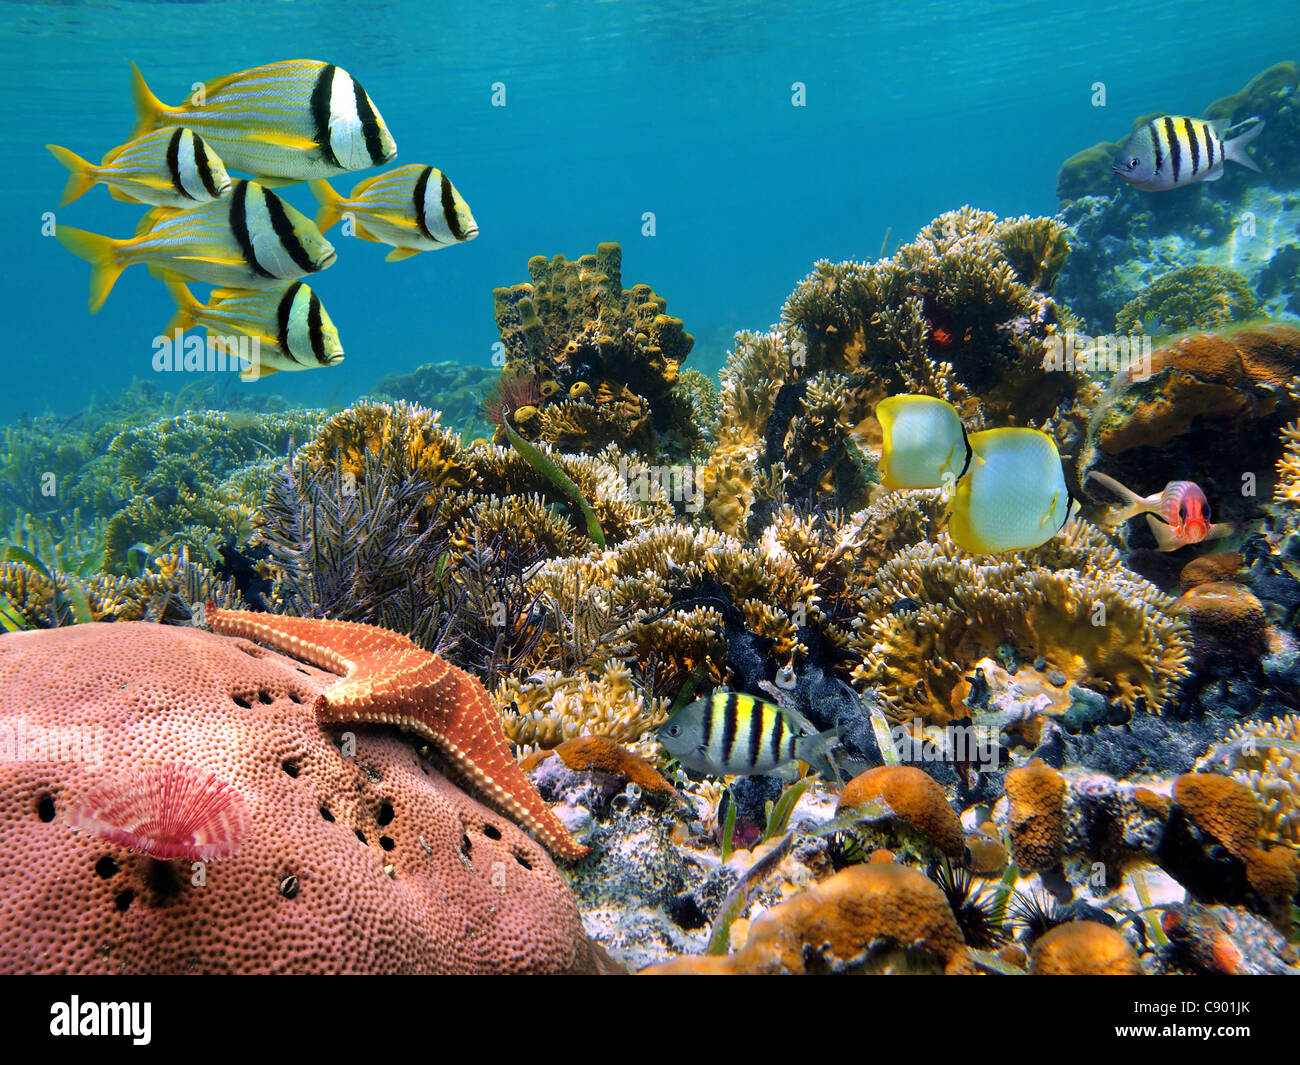 Tropical underwater marine in a thriving coral reef of the Caribbean sea - Stock Image